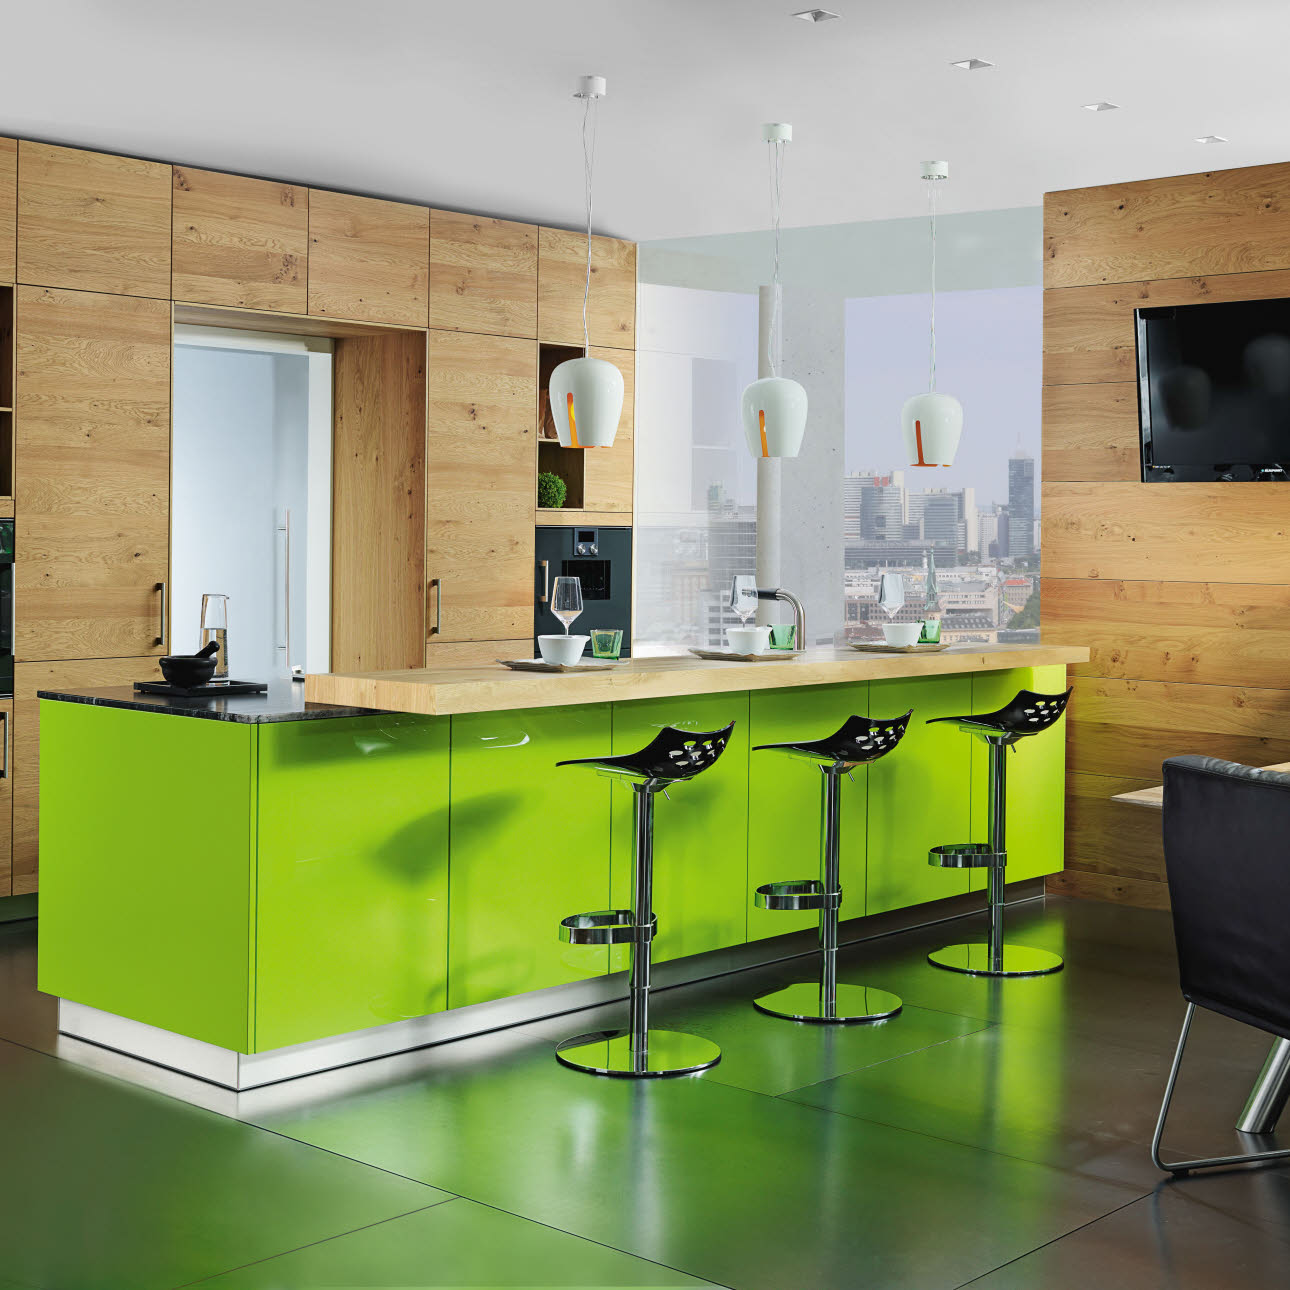 Lucca in der Trendfarbe lime green